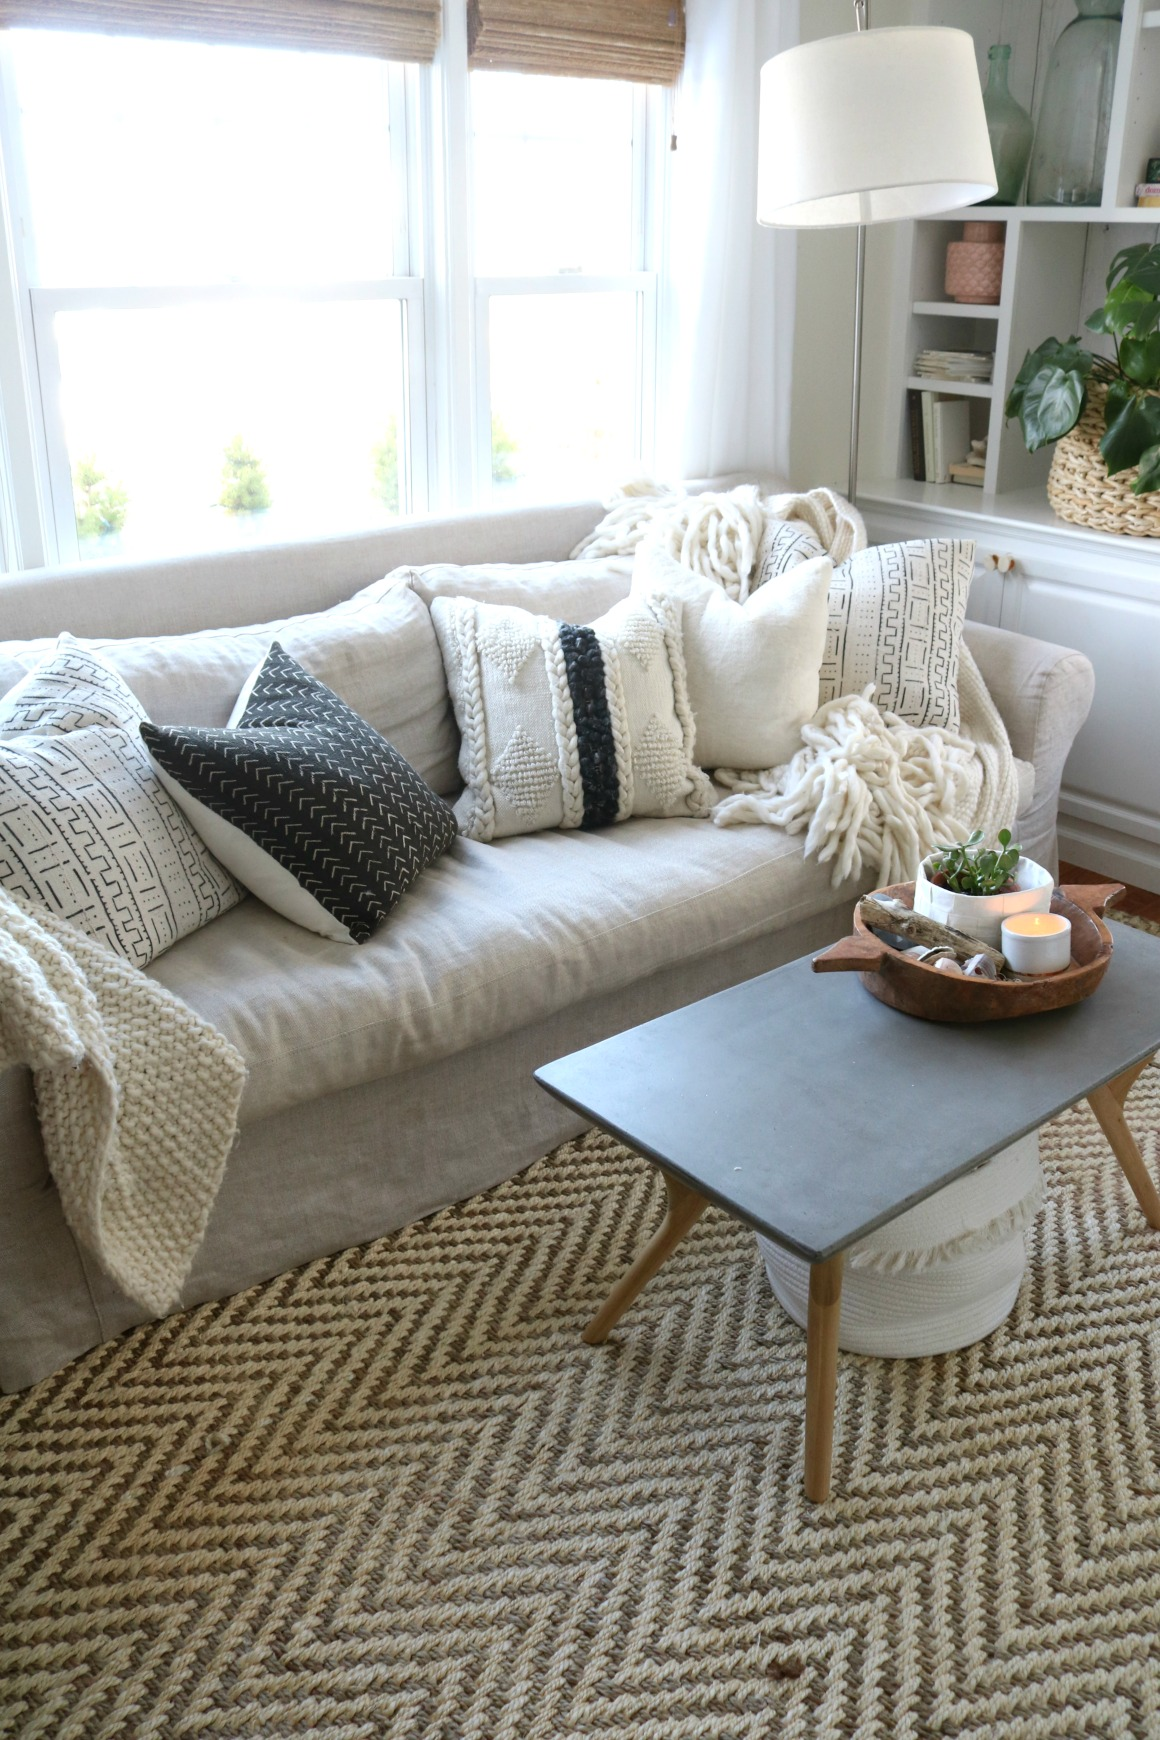 How To Mix Color And Patterns With Pillows The Pillow